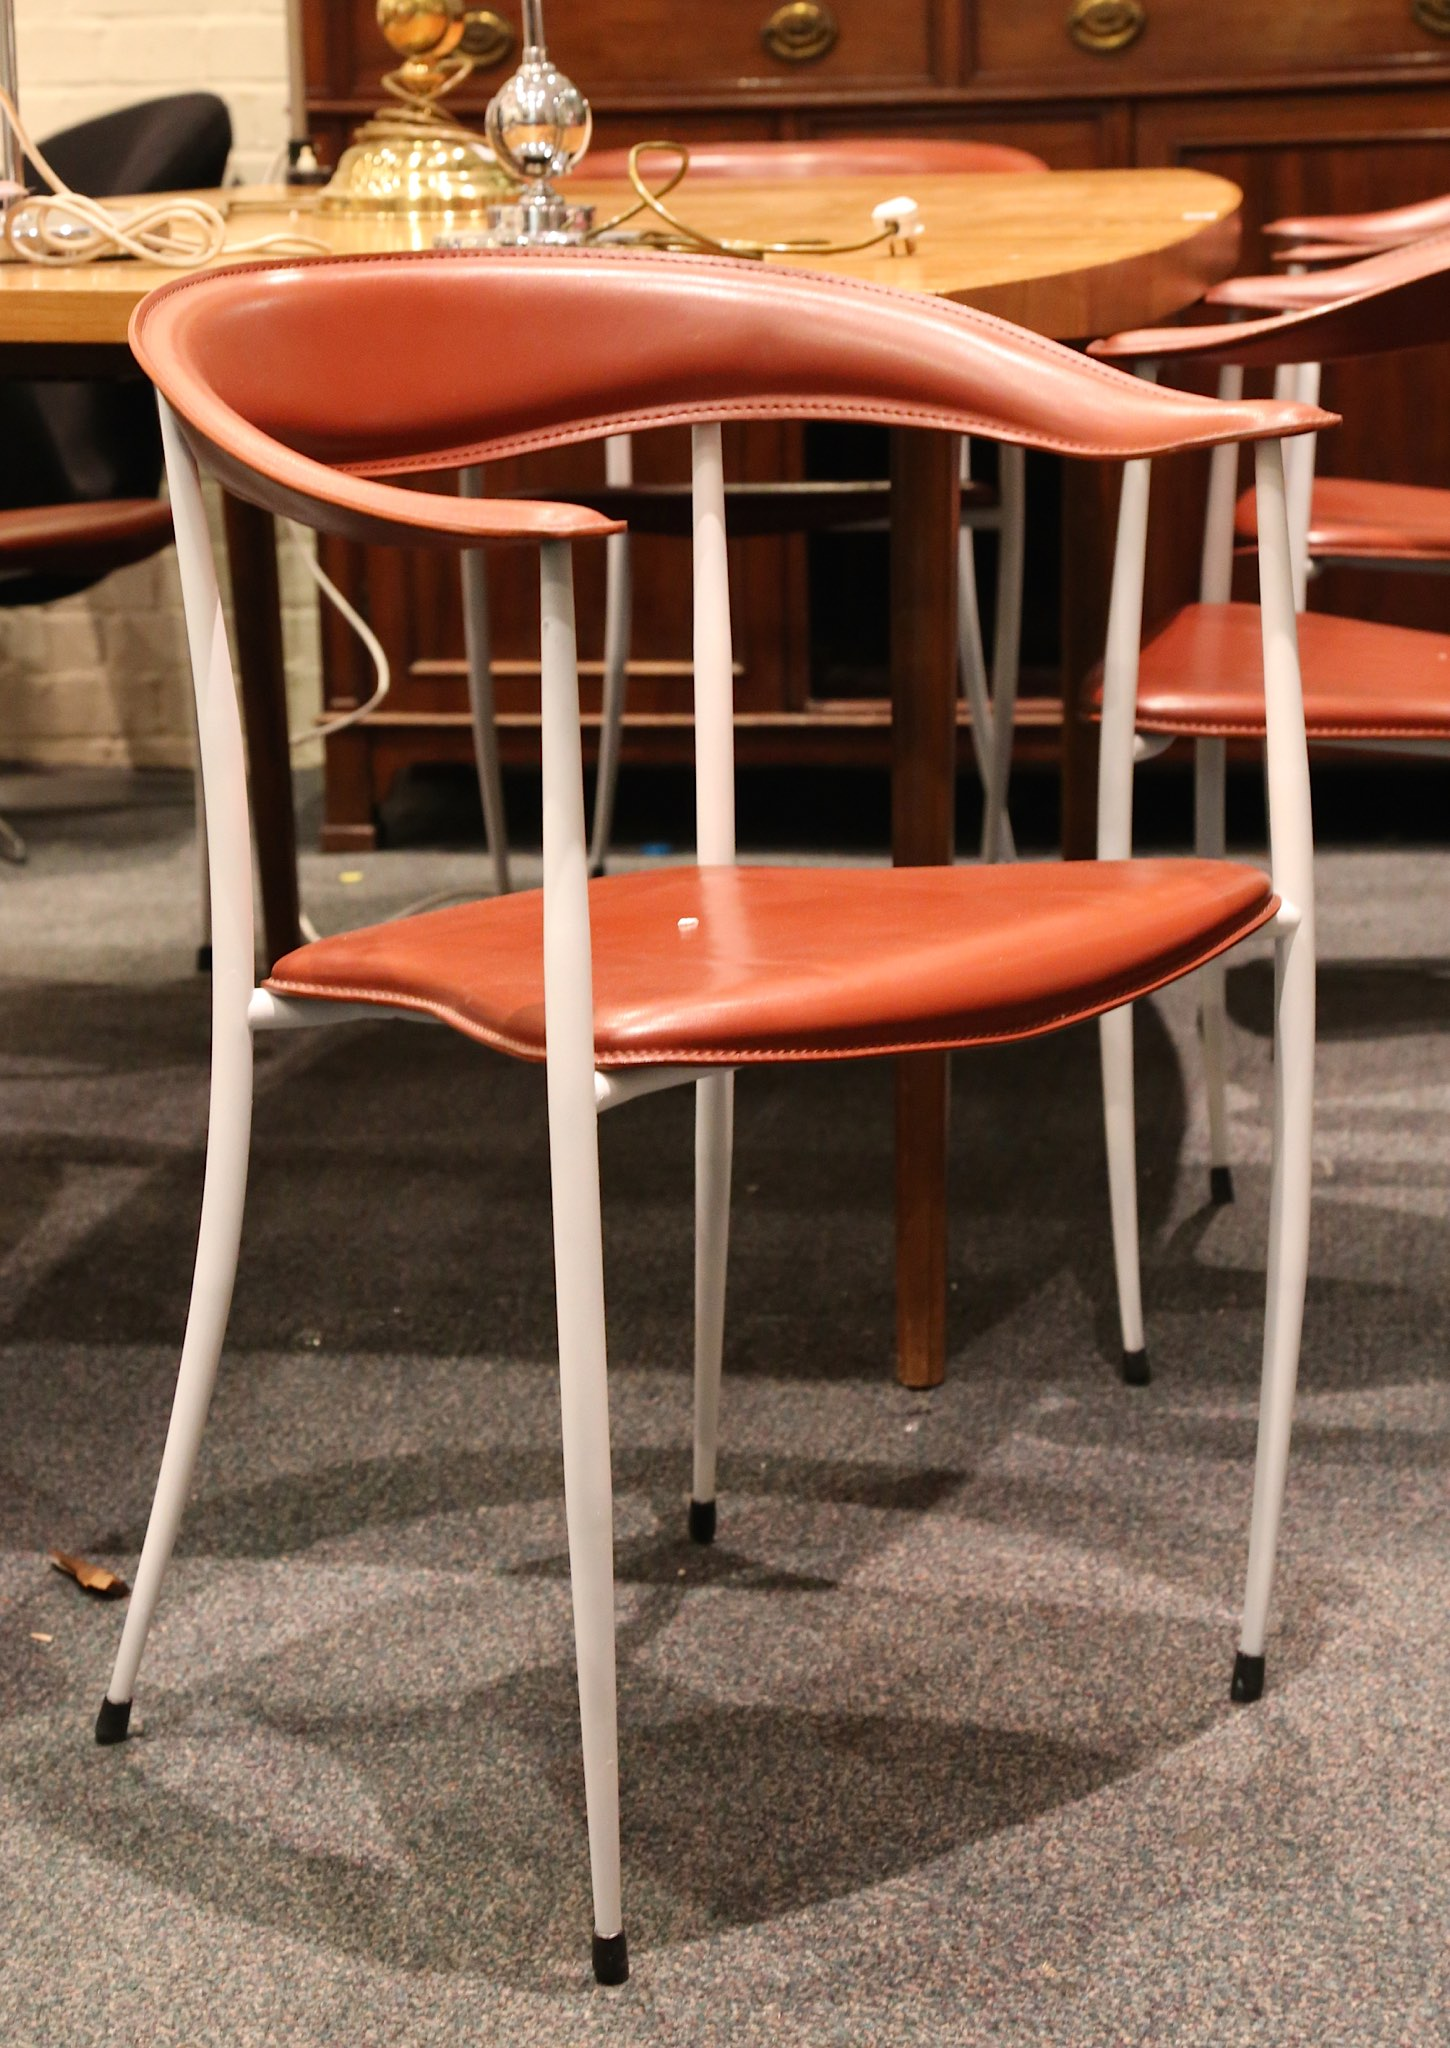 A SET OF SIX ARPER DINING CHAIRS tan leather seat and back rest